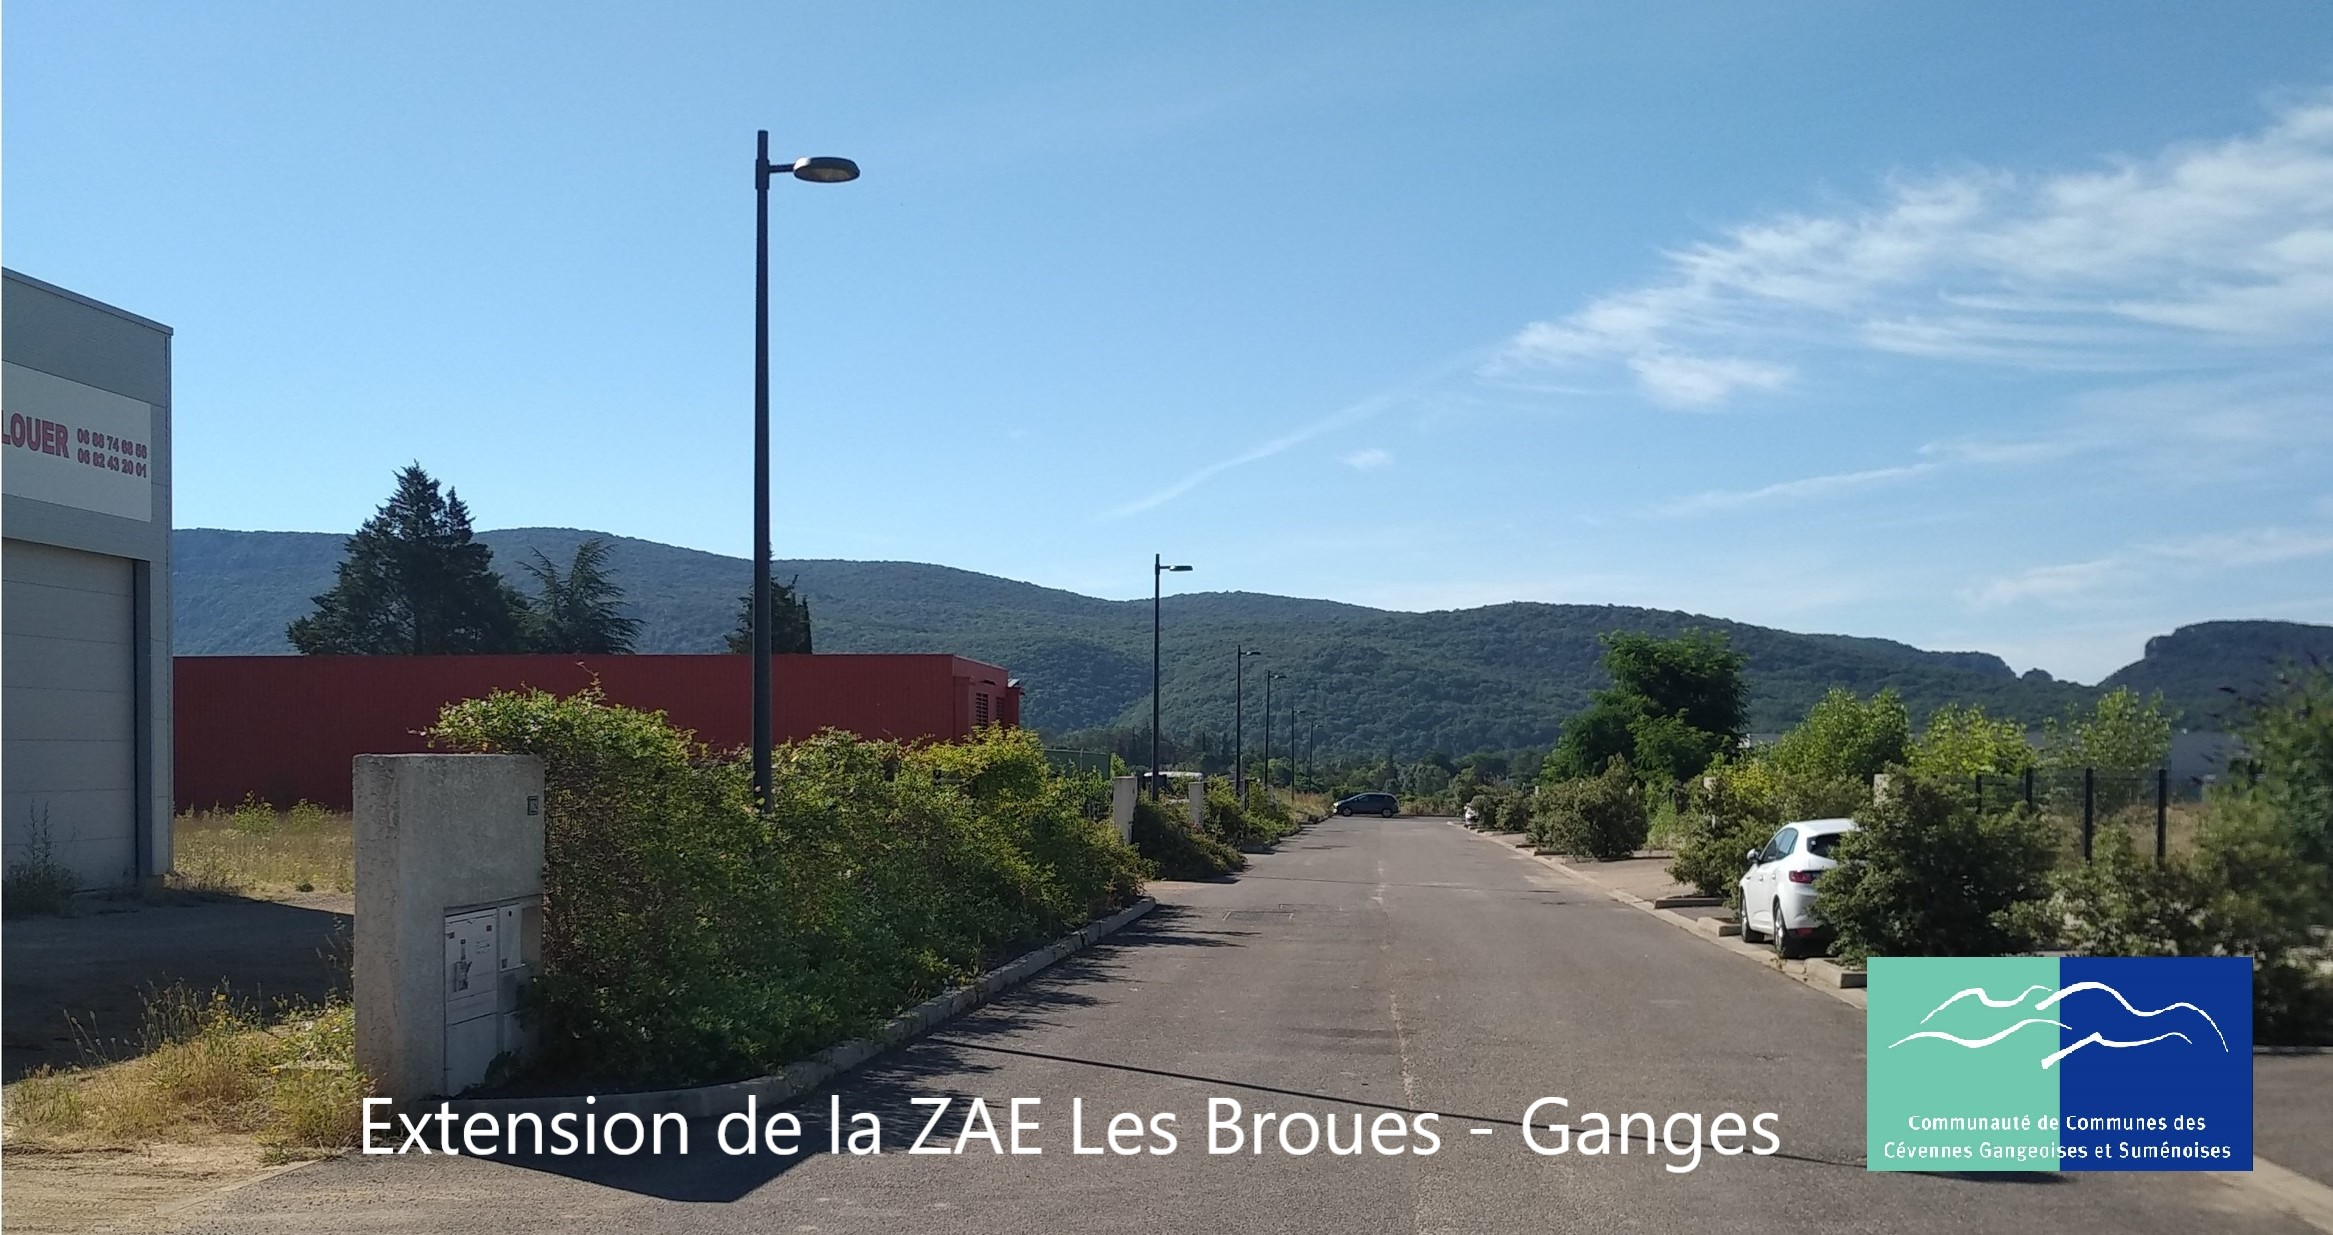 extension de la zae les broues a ganges